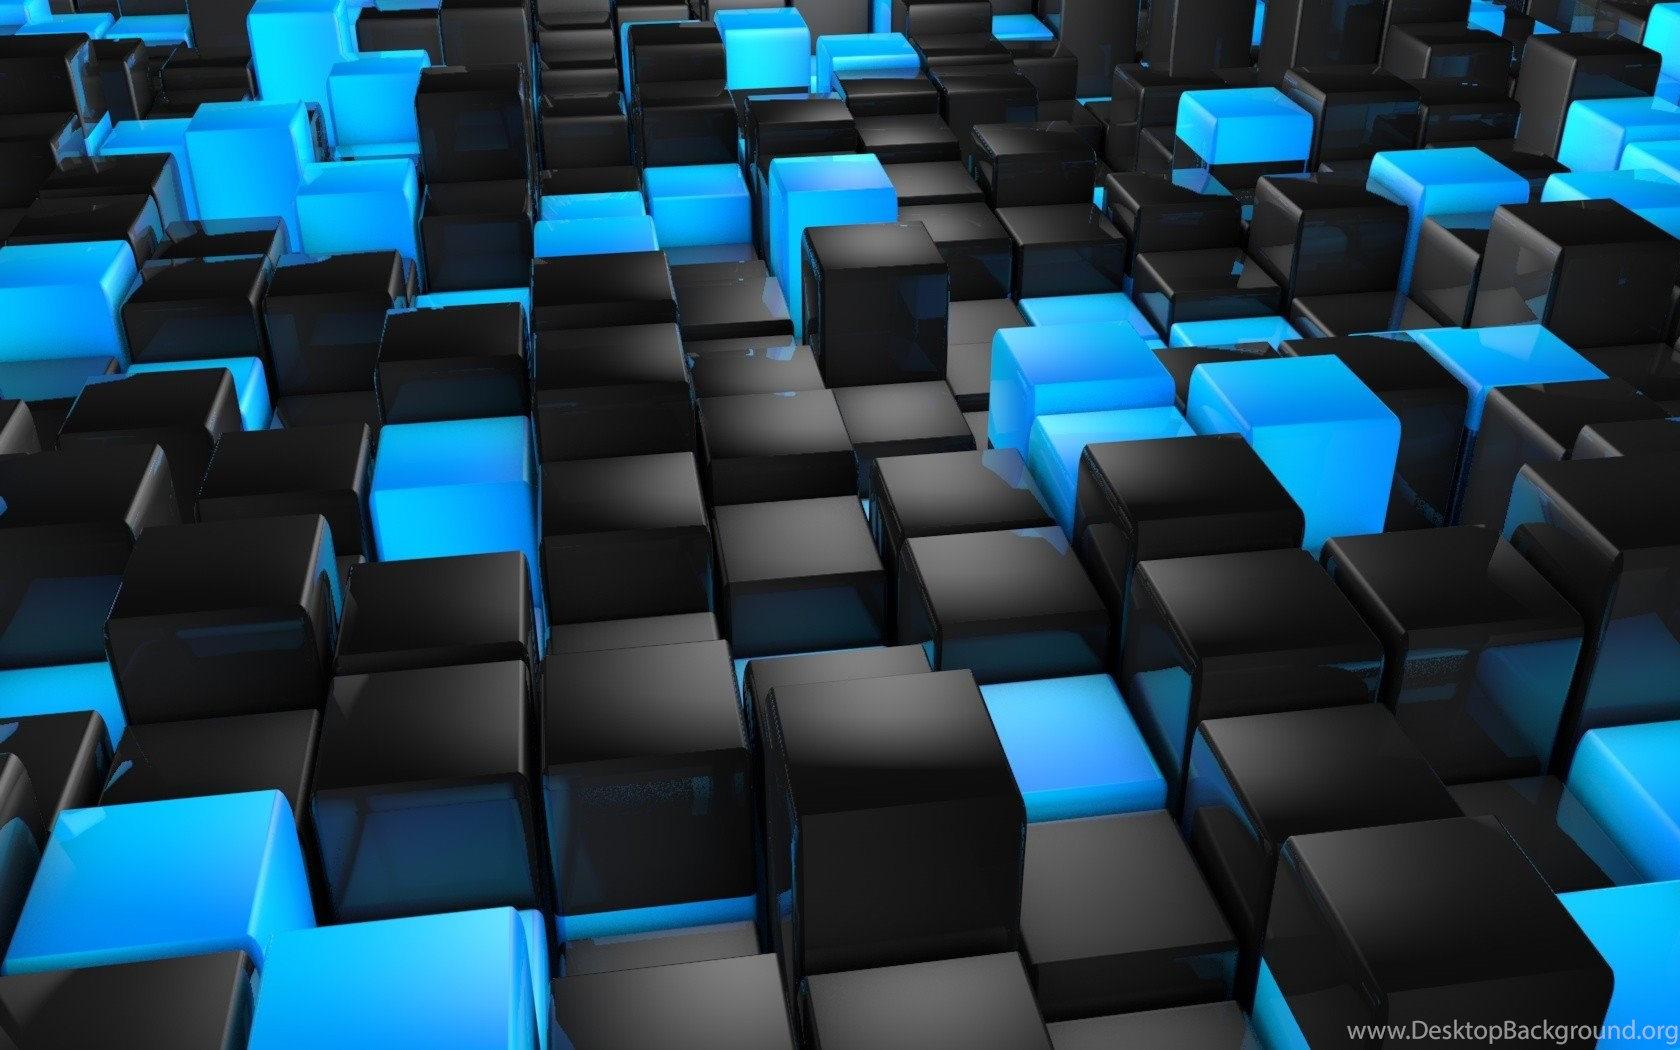 Cool Pc Wallpapers 3d Black And Blue Cubes Wallpapers 1920x1200